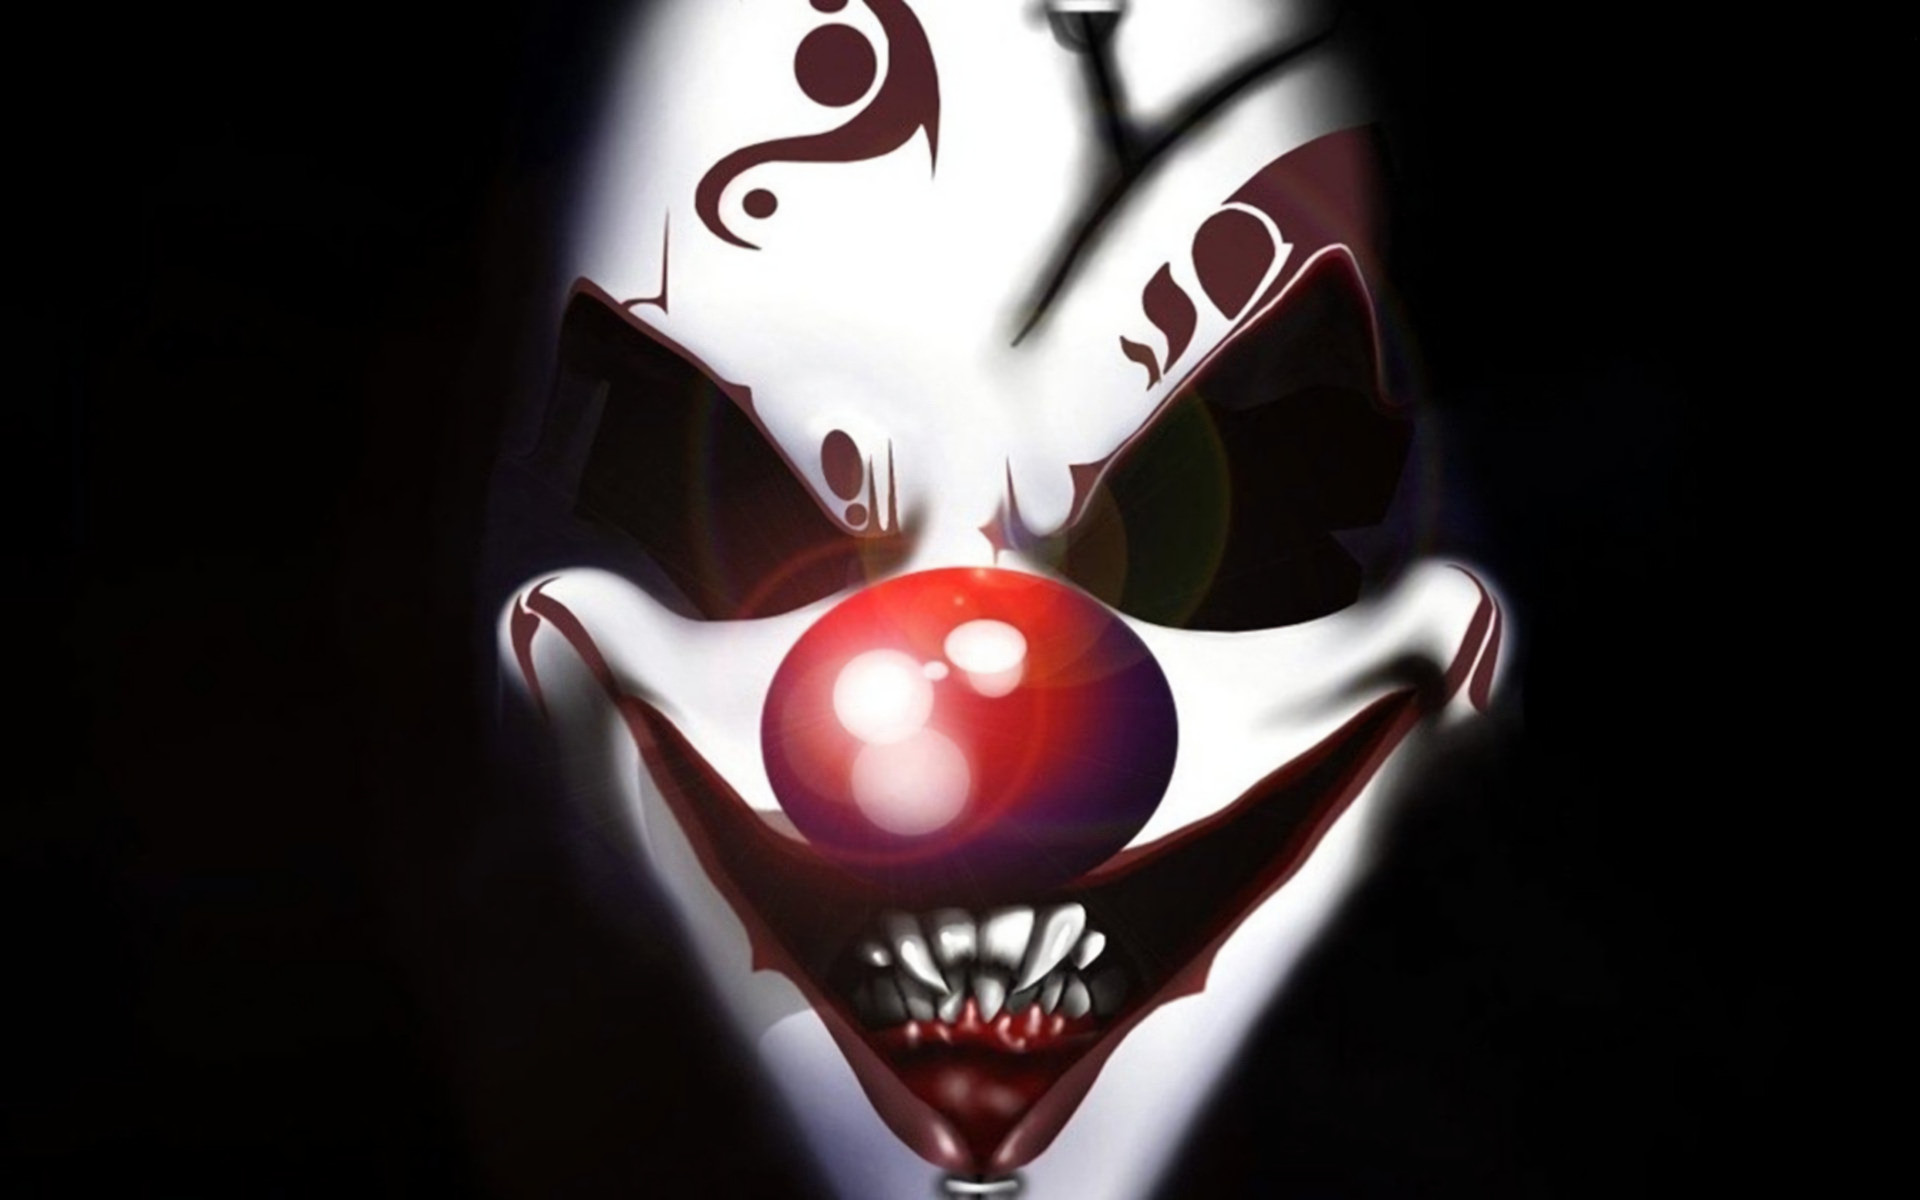 1920x1200 Dark - Clown Holiday Halloween Scary Face Wallpaper